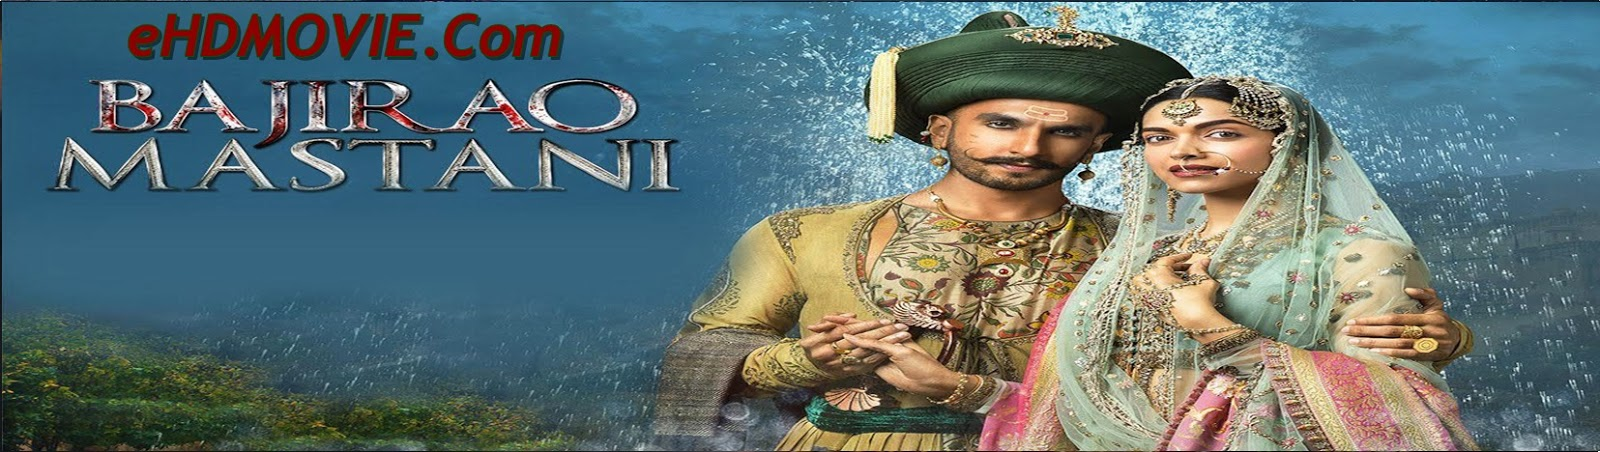 Bajirao Mastani 2015 Full Movie Hindi 720p - HEVC - 480p ORG BRRip 450MB - 550MB - 1.2GB ESubs Free Download